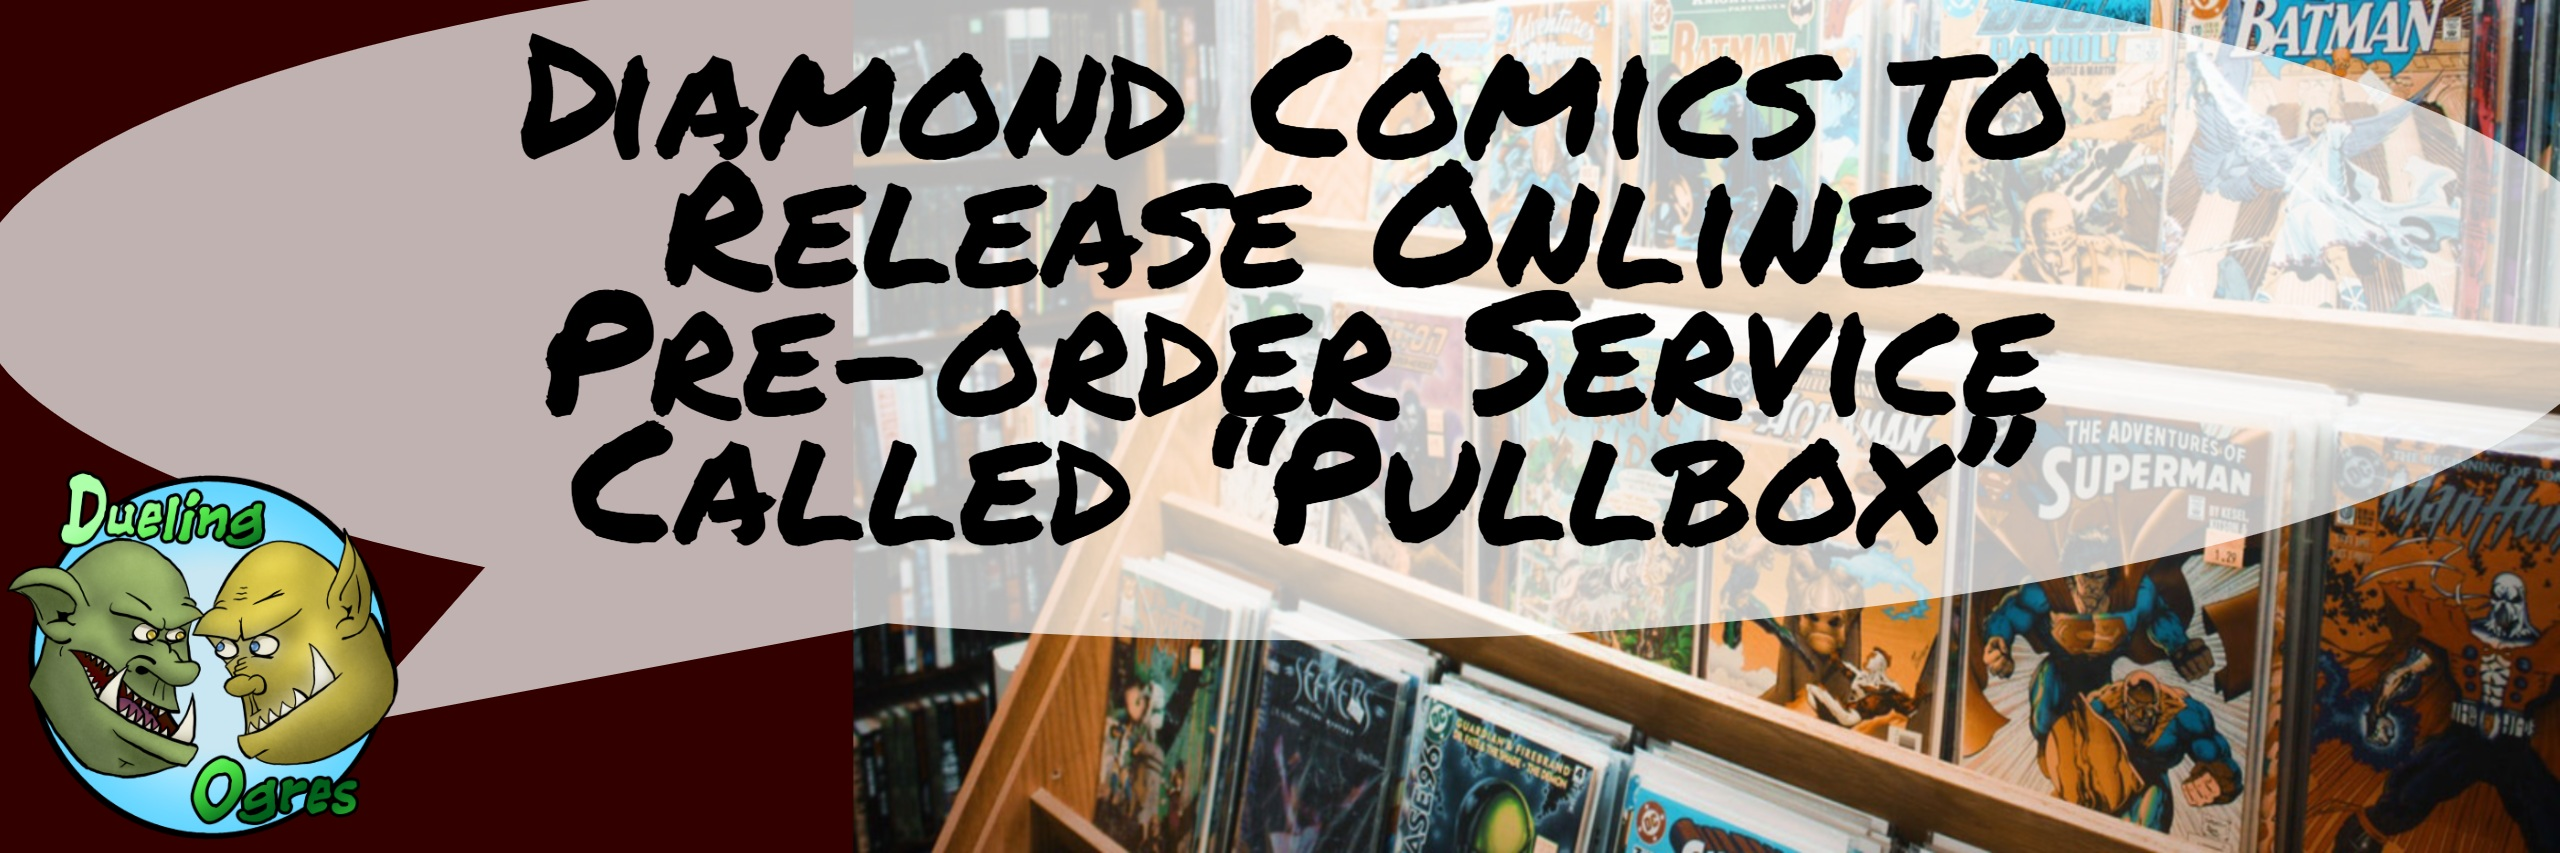 "Diamond Comics to Release Online Pre-order Service Called ""Pullbox"""